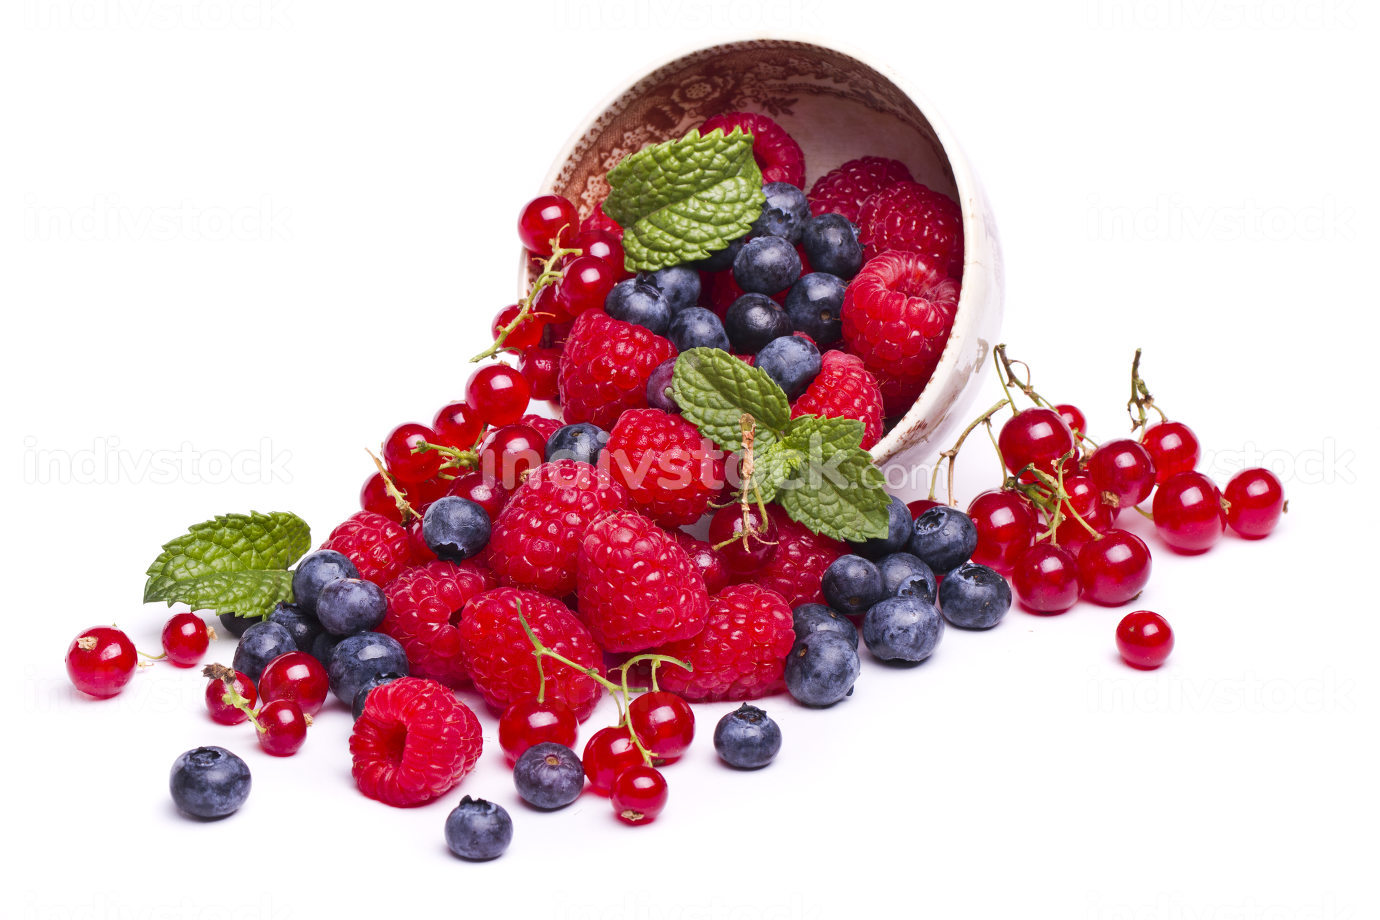 tasty mix of berries